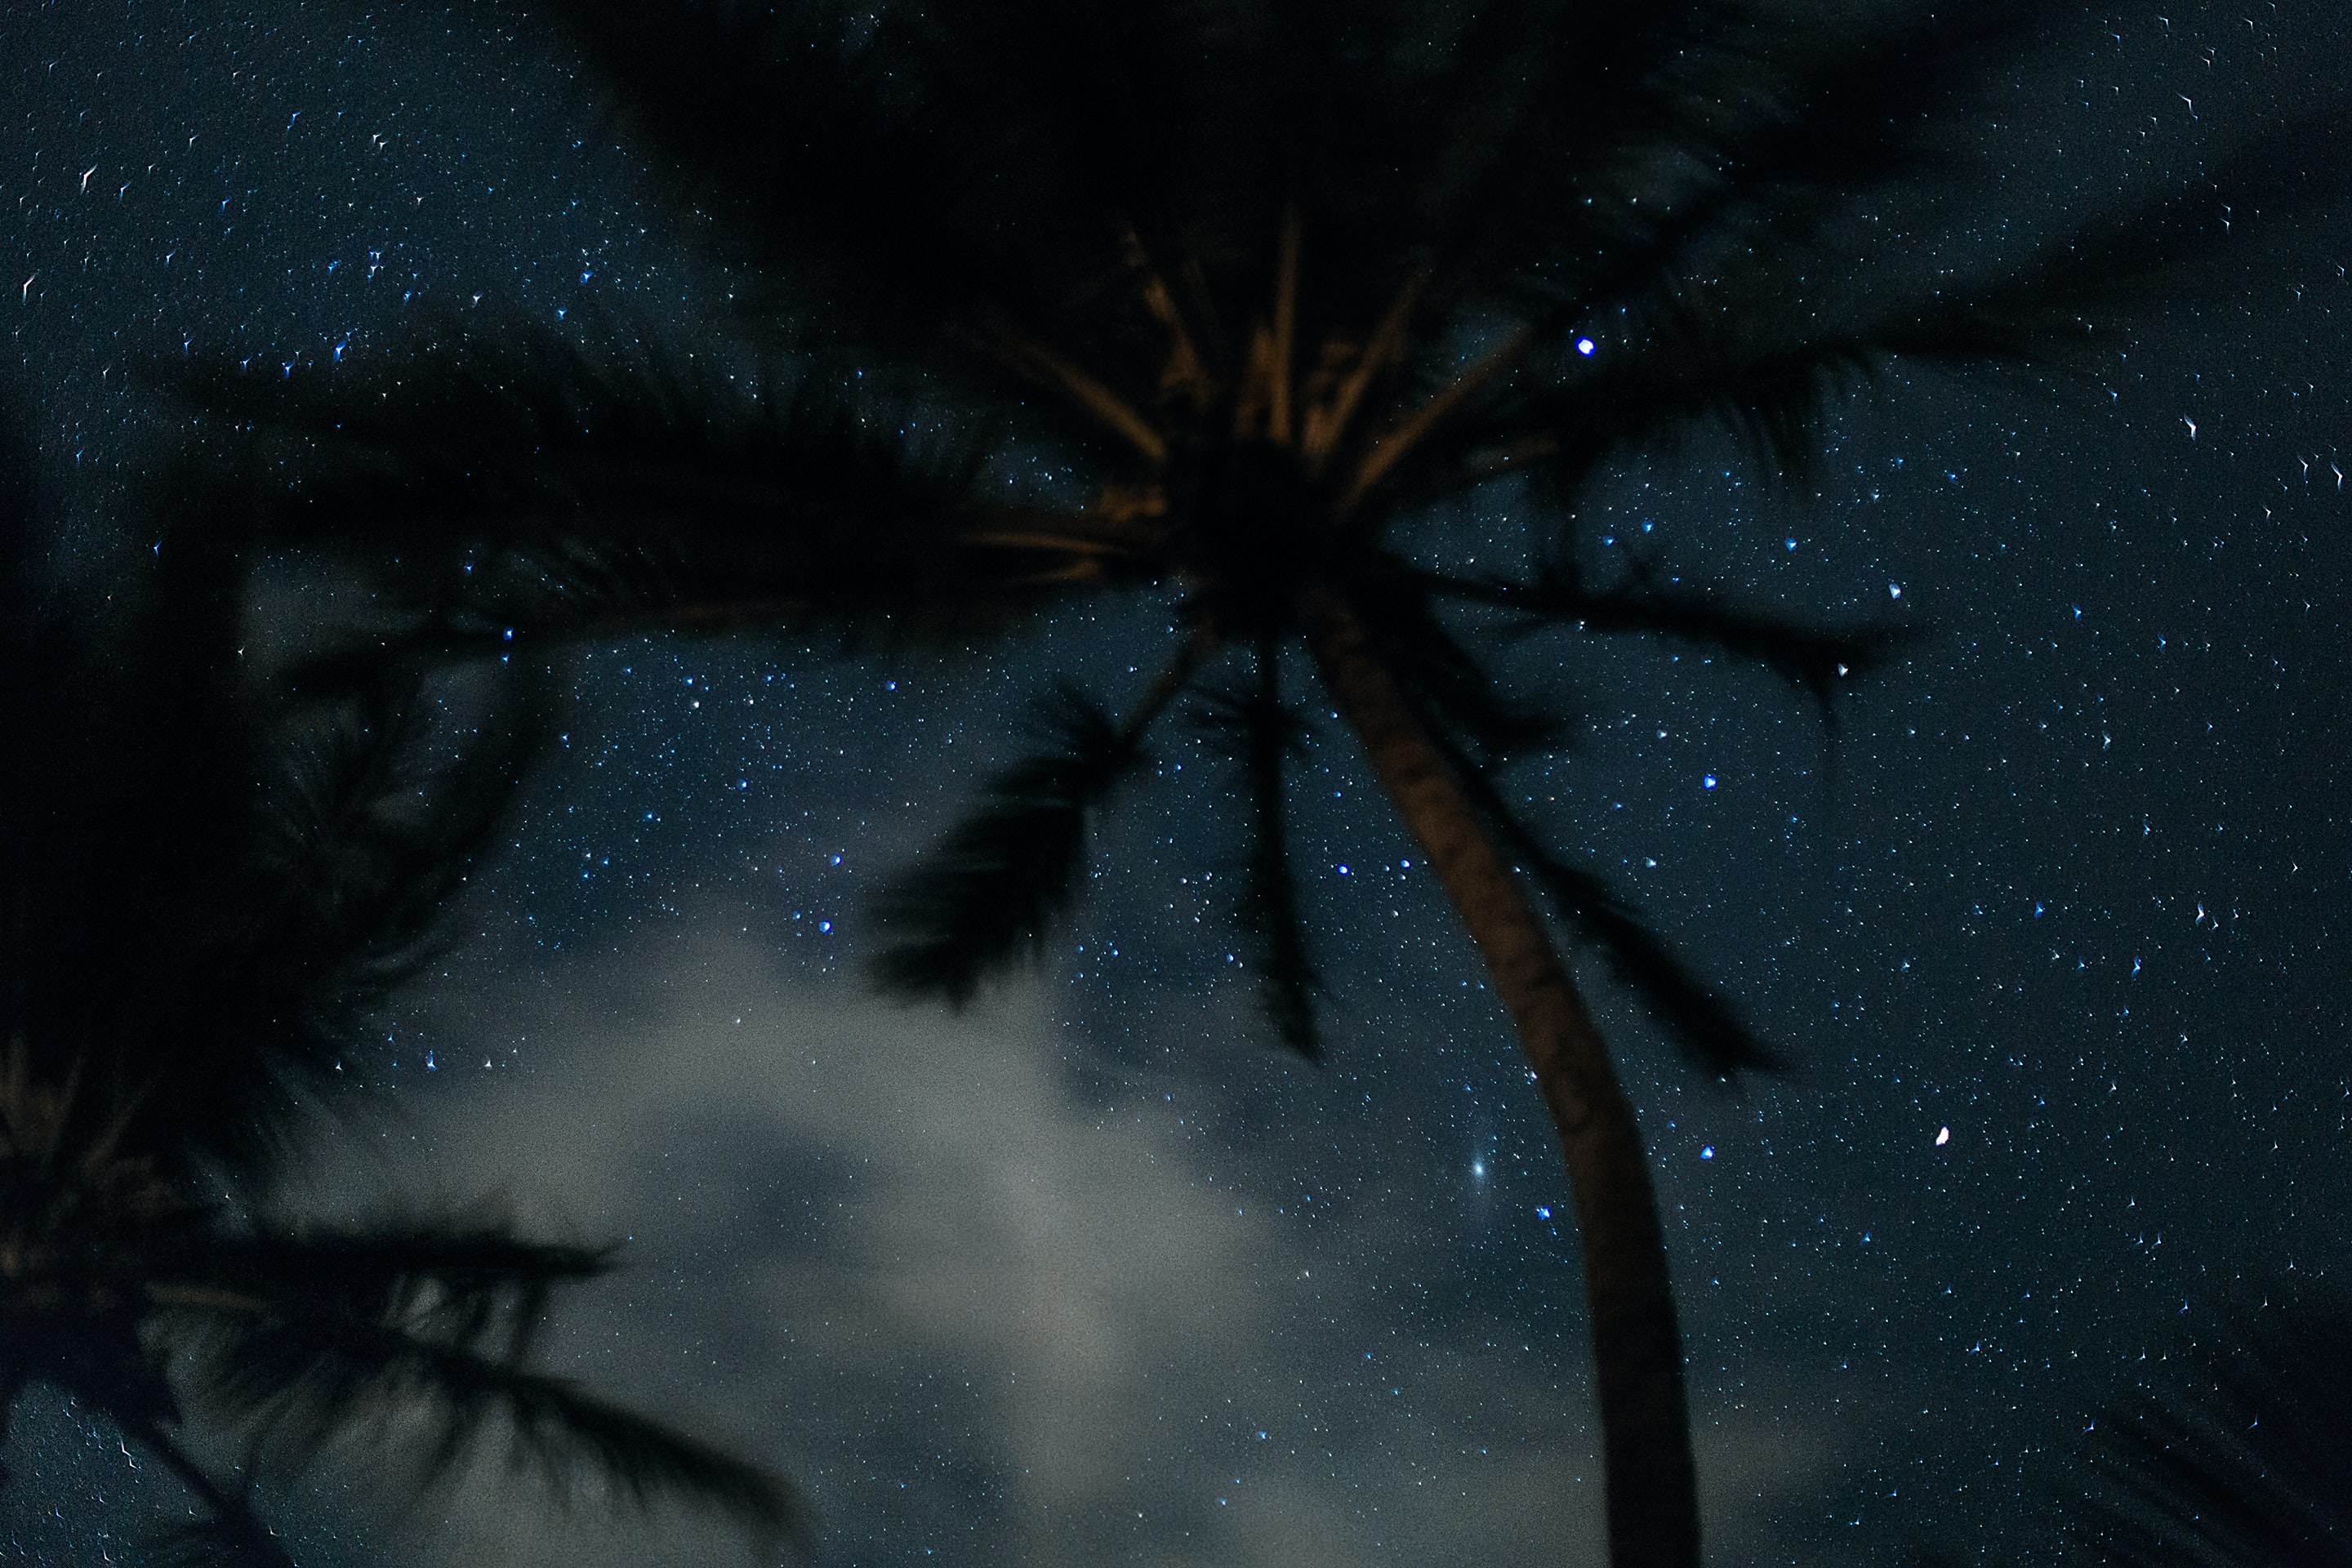 A palm tree under a starry night sky.